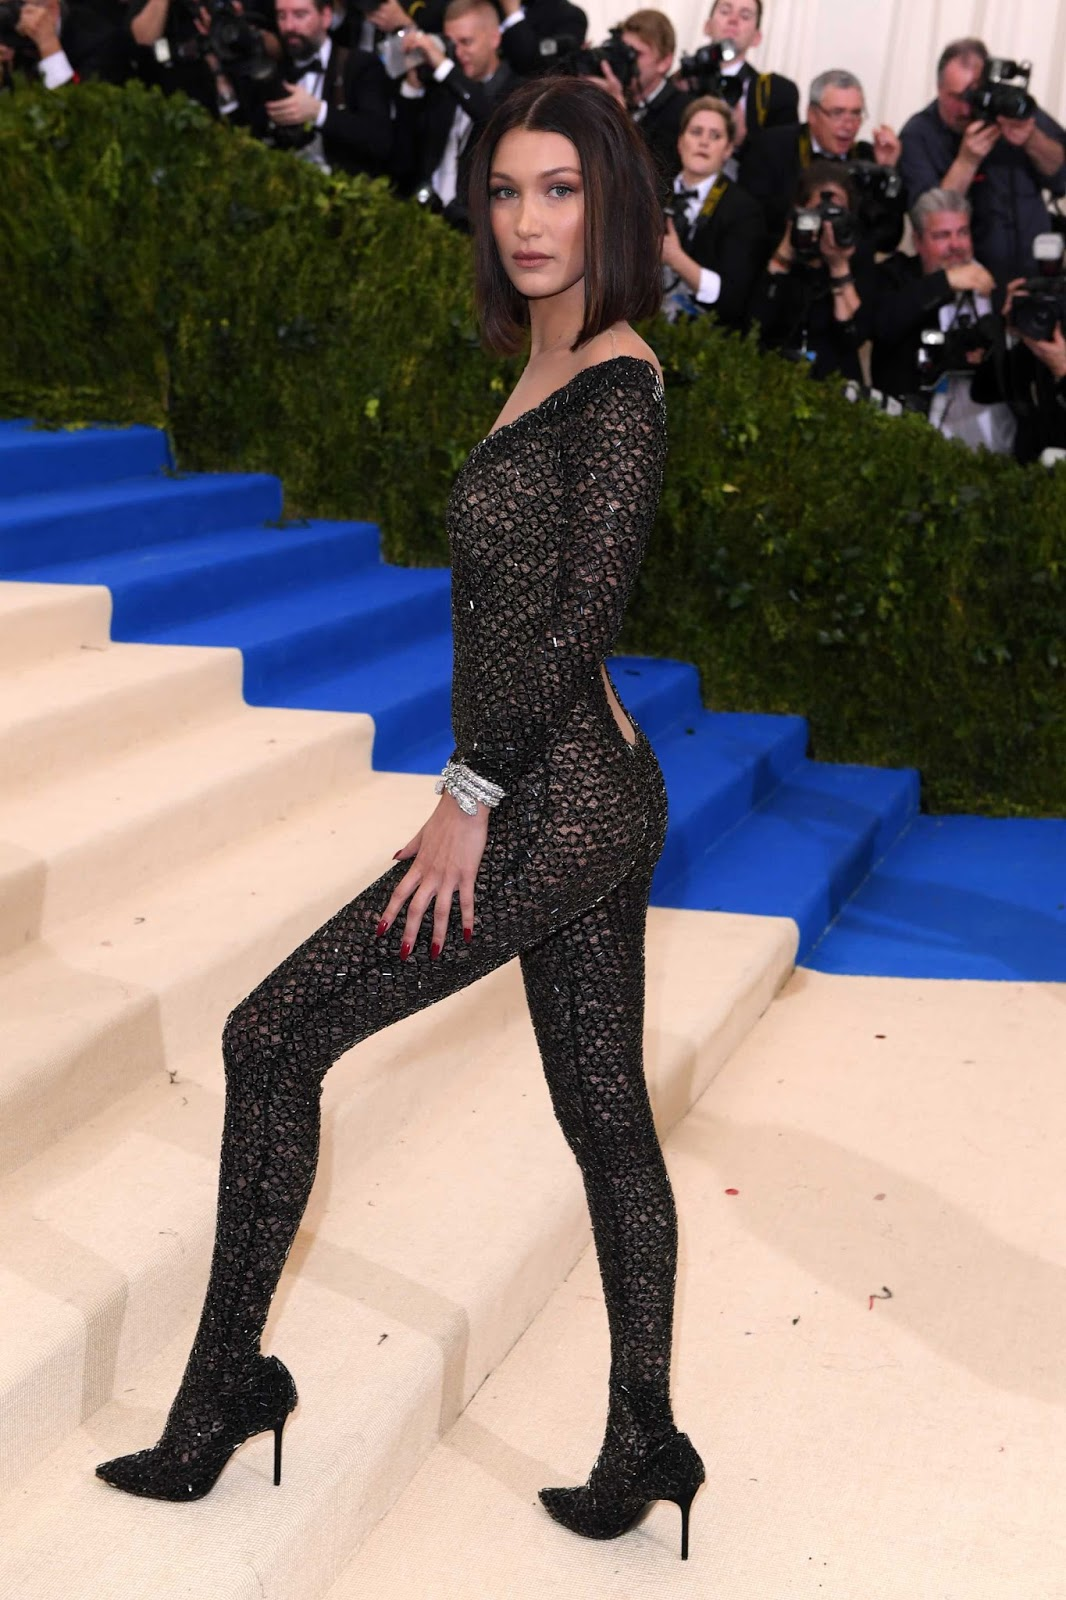 Bella Hadid perfectly showcased her flawless figure in a backless glittery catsuit by Alexander Wang as she arrived for the Met Gala on Monday night in New York City